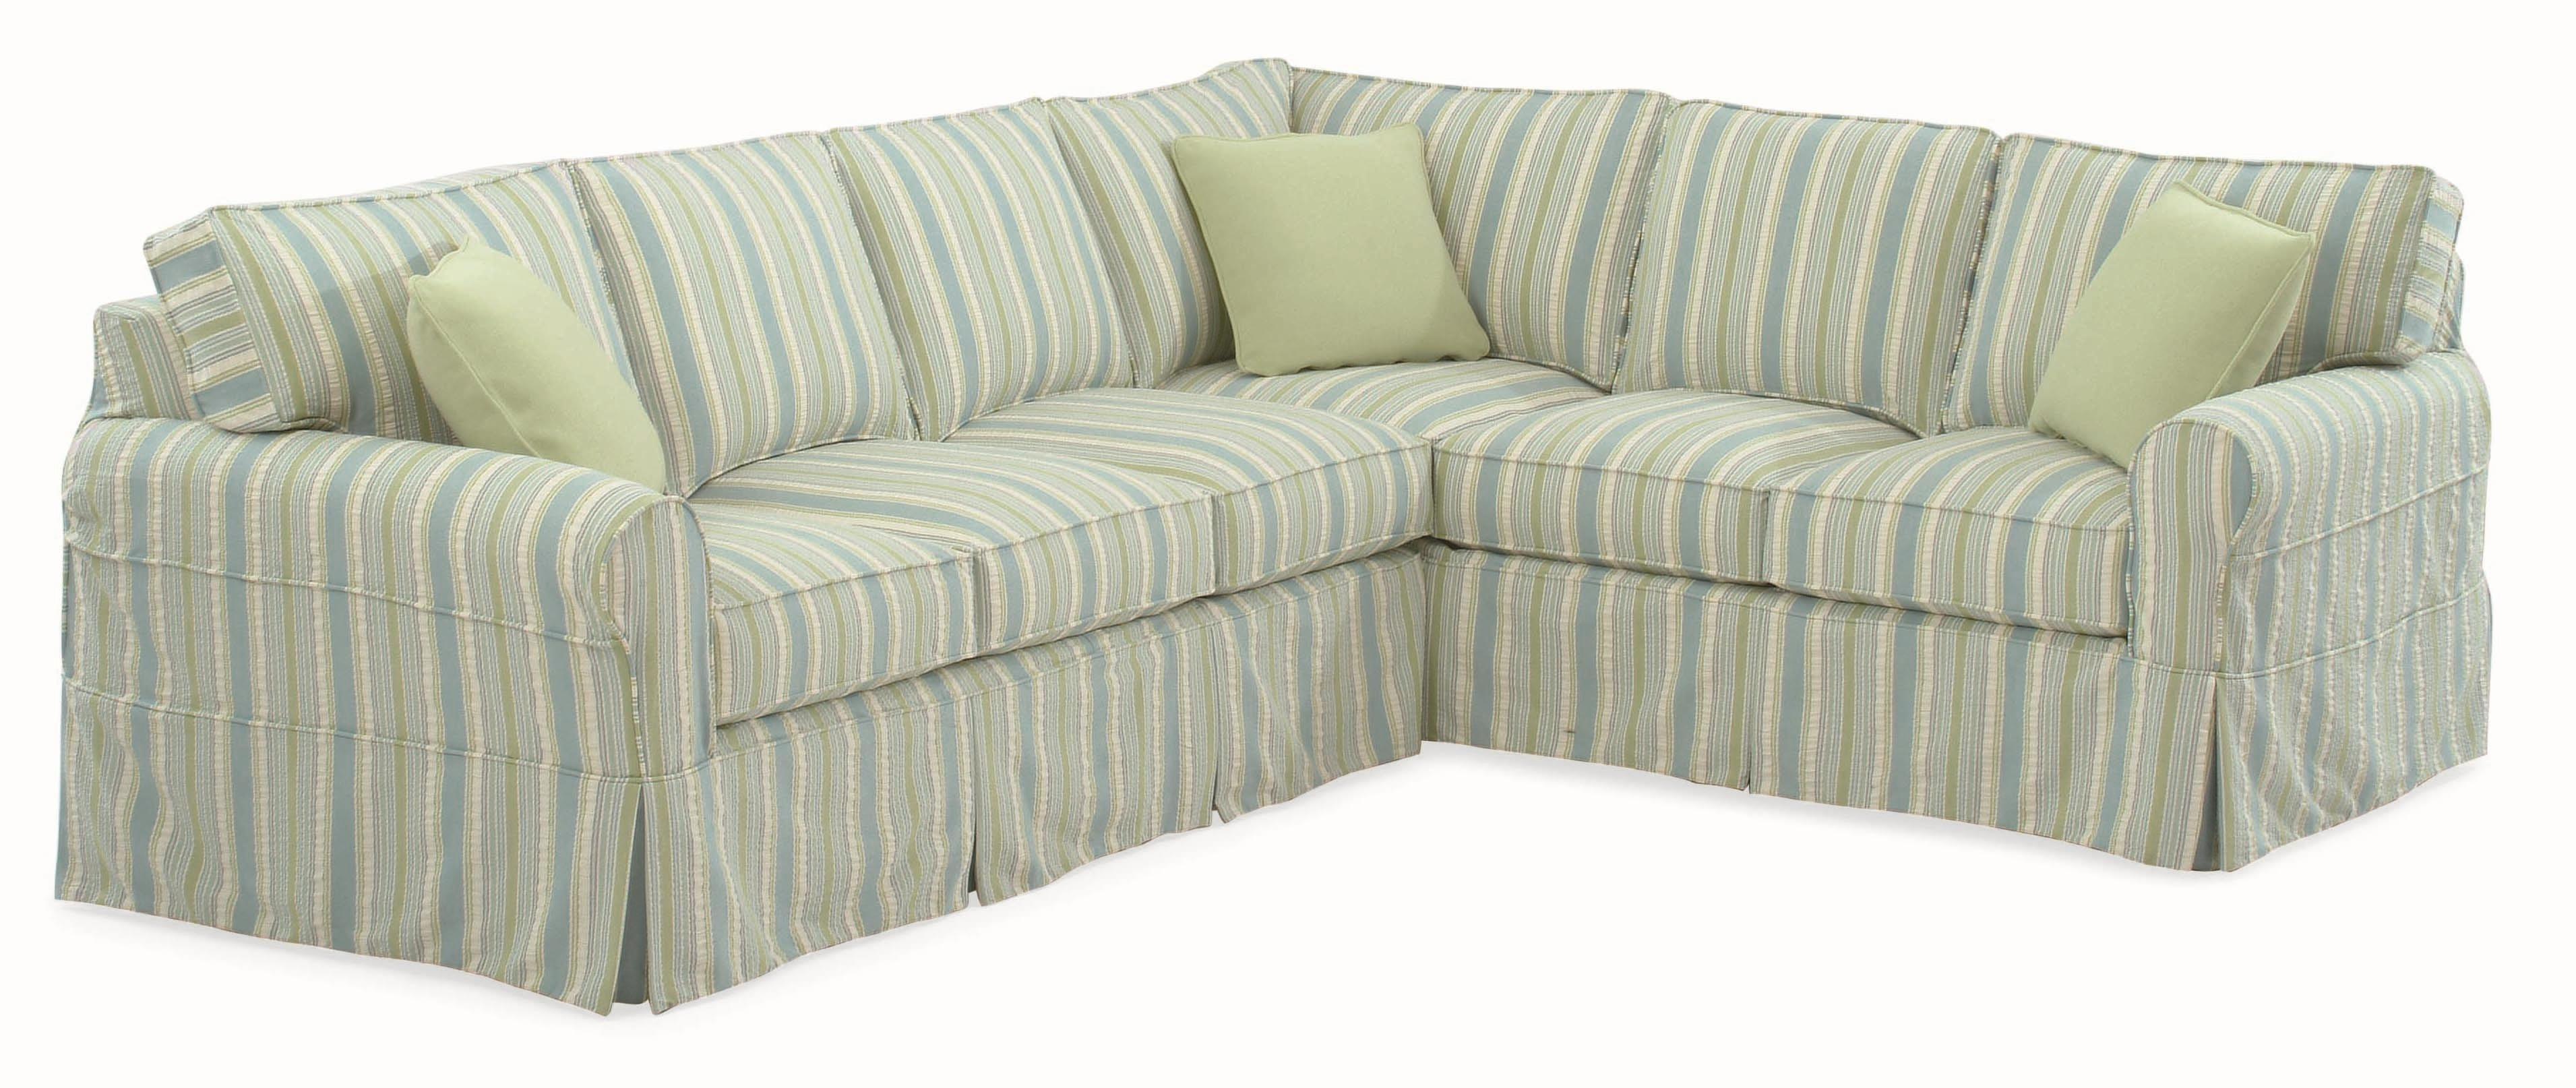 Beautiful Havertys Sectional Sofa 70 With Additional Tempurpedic Regarding Sectional Sofas At Havertys (View 2 of 15)